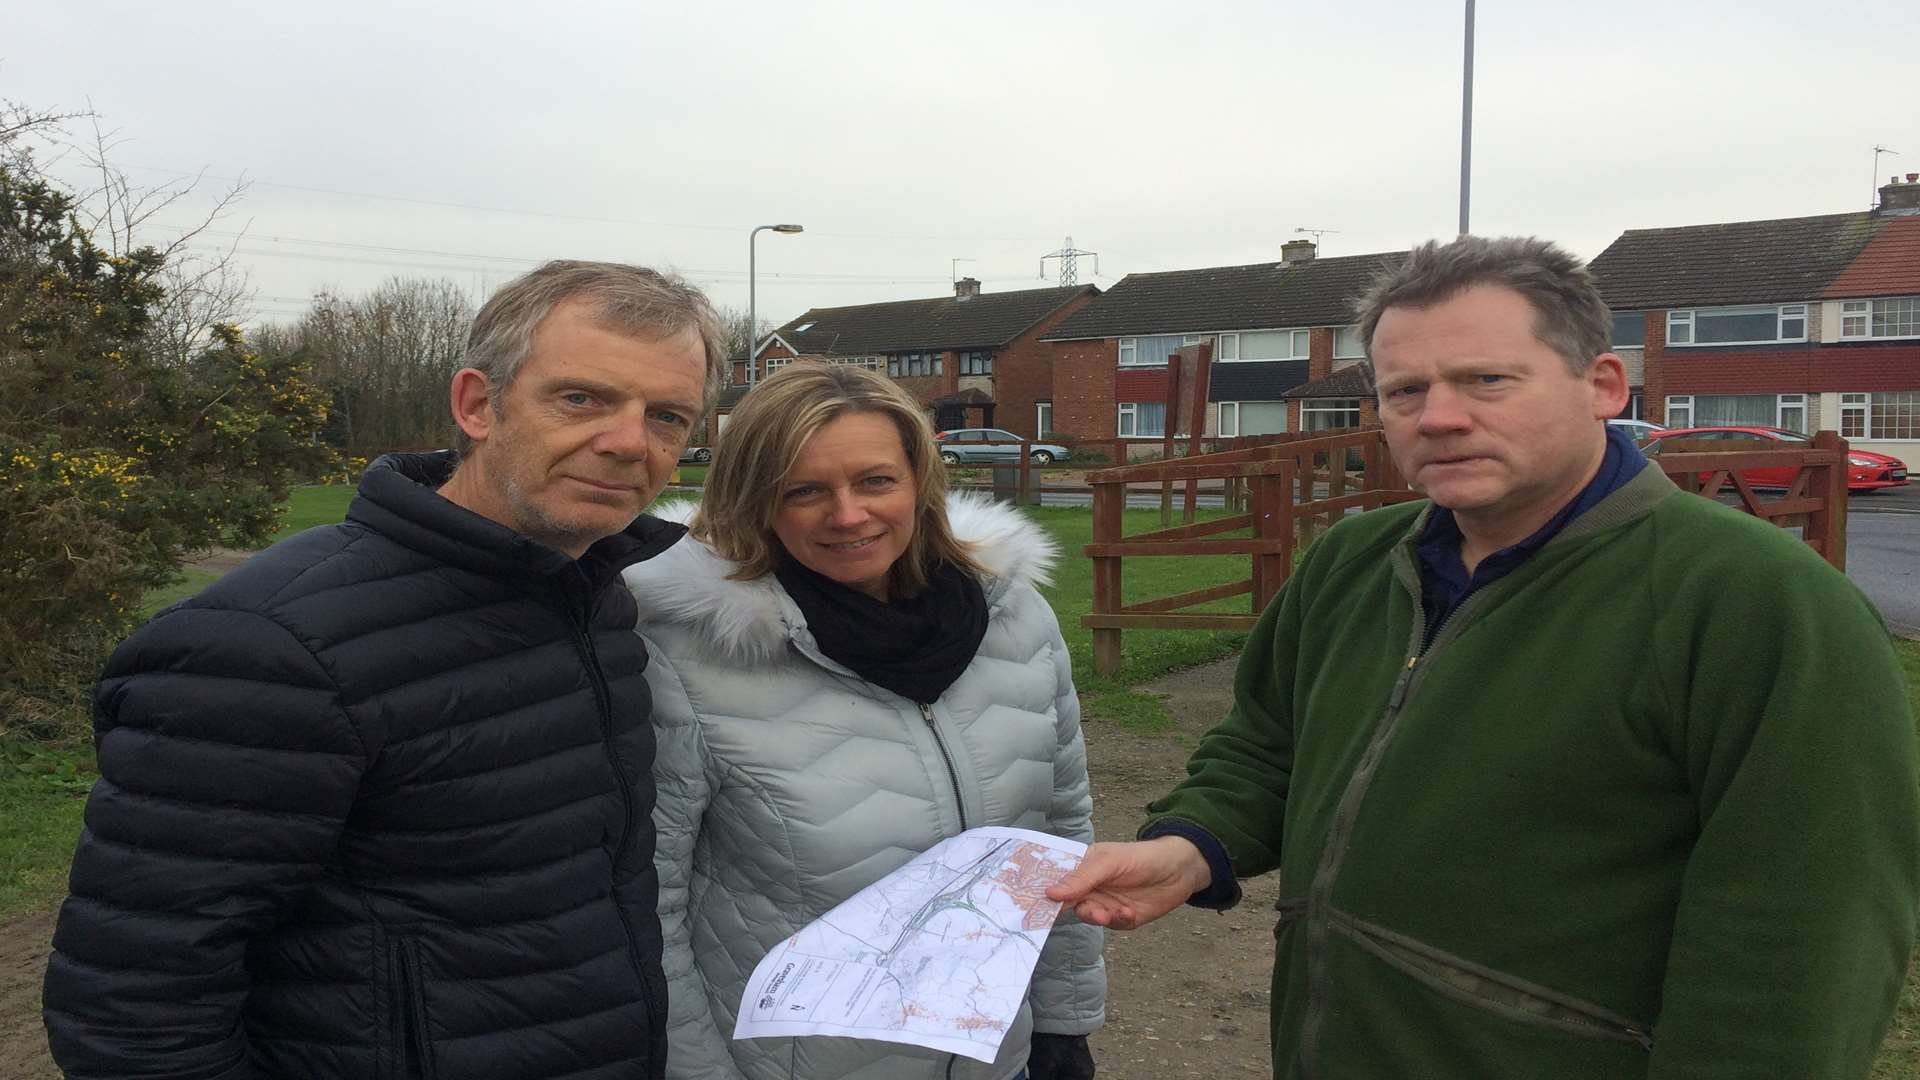 MP Adam Holloway talks to Andrew & Karen Moore about the potential impact of the Lower Thames Crossing